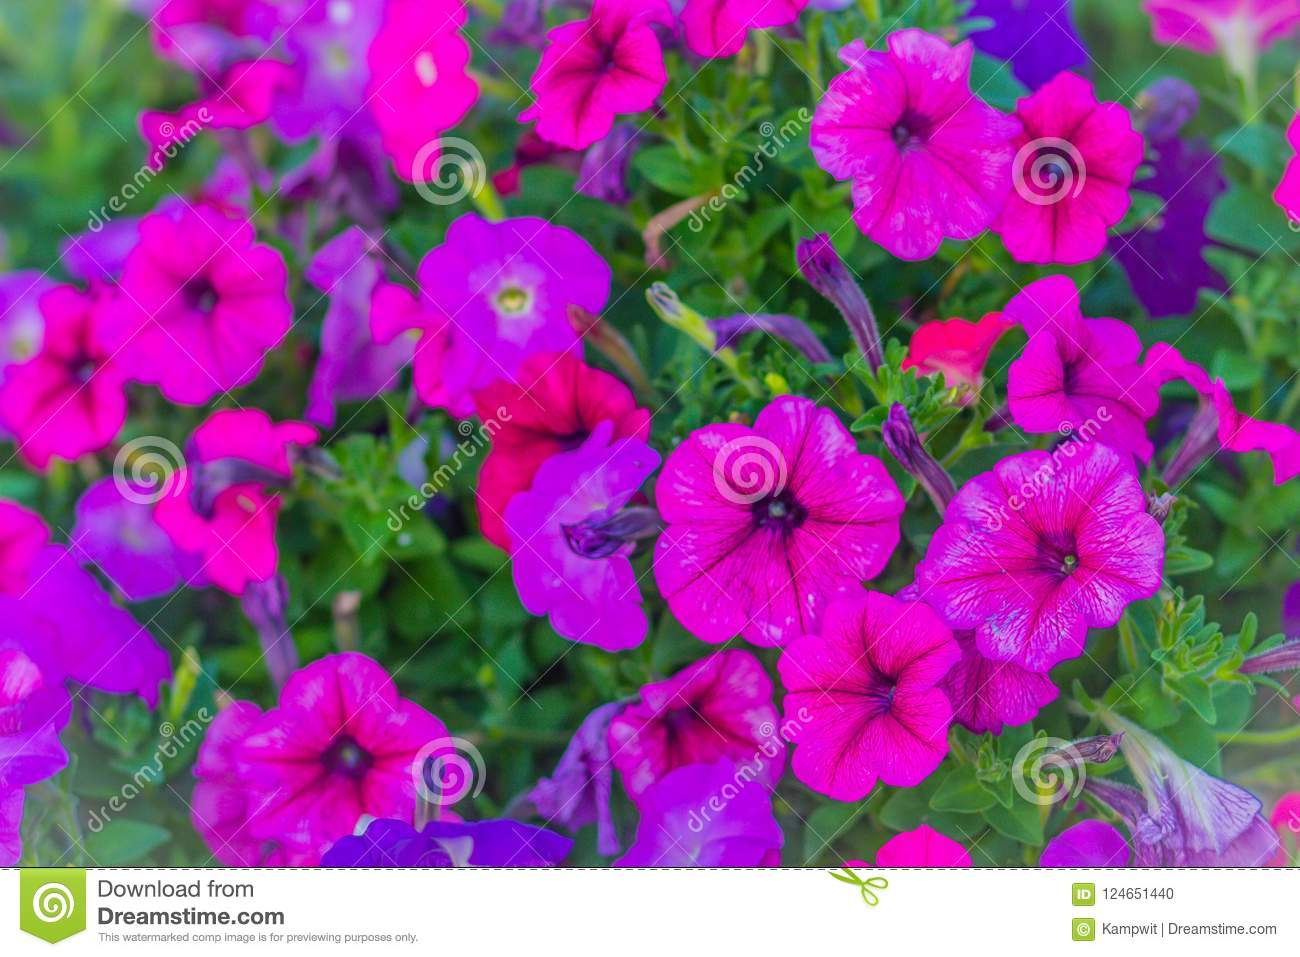 Ampel petunia is one of the popular types of garden flowers 13